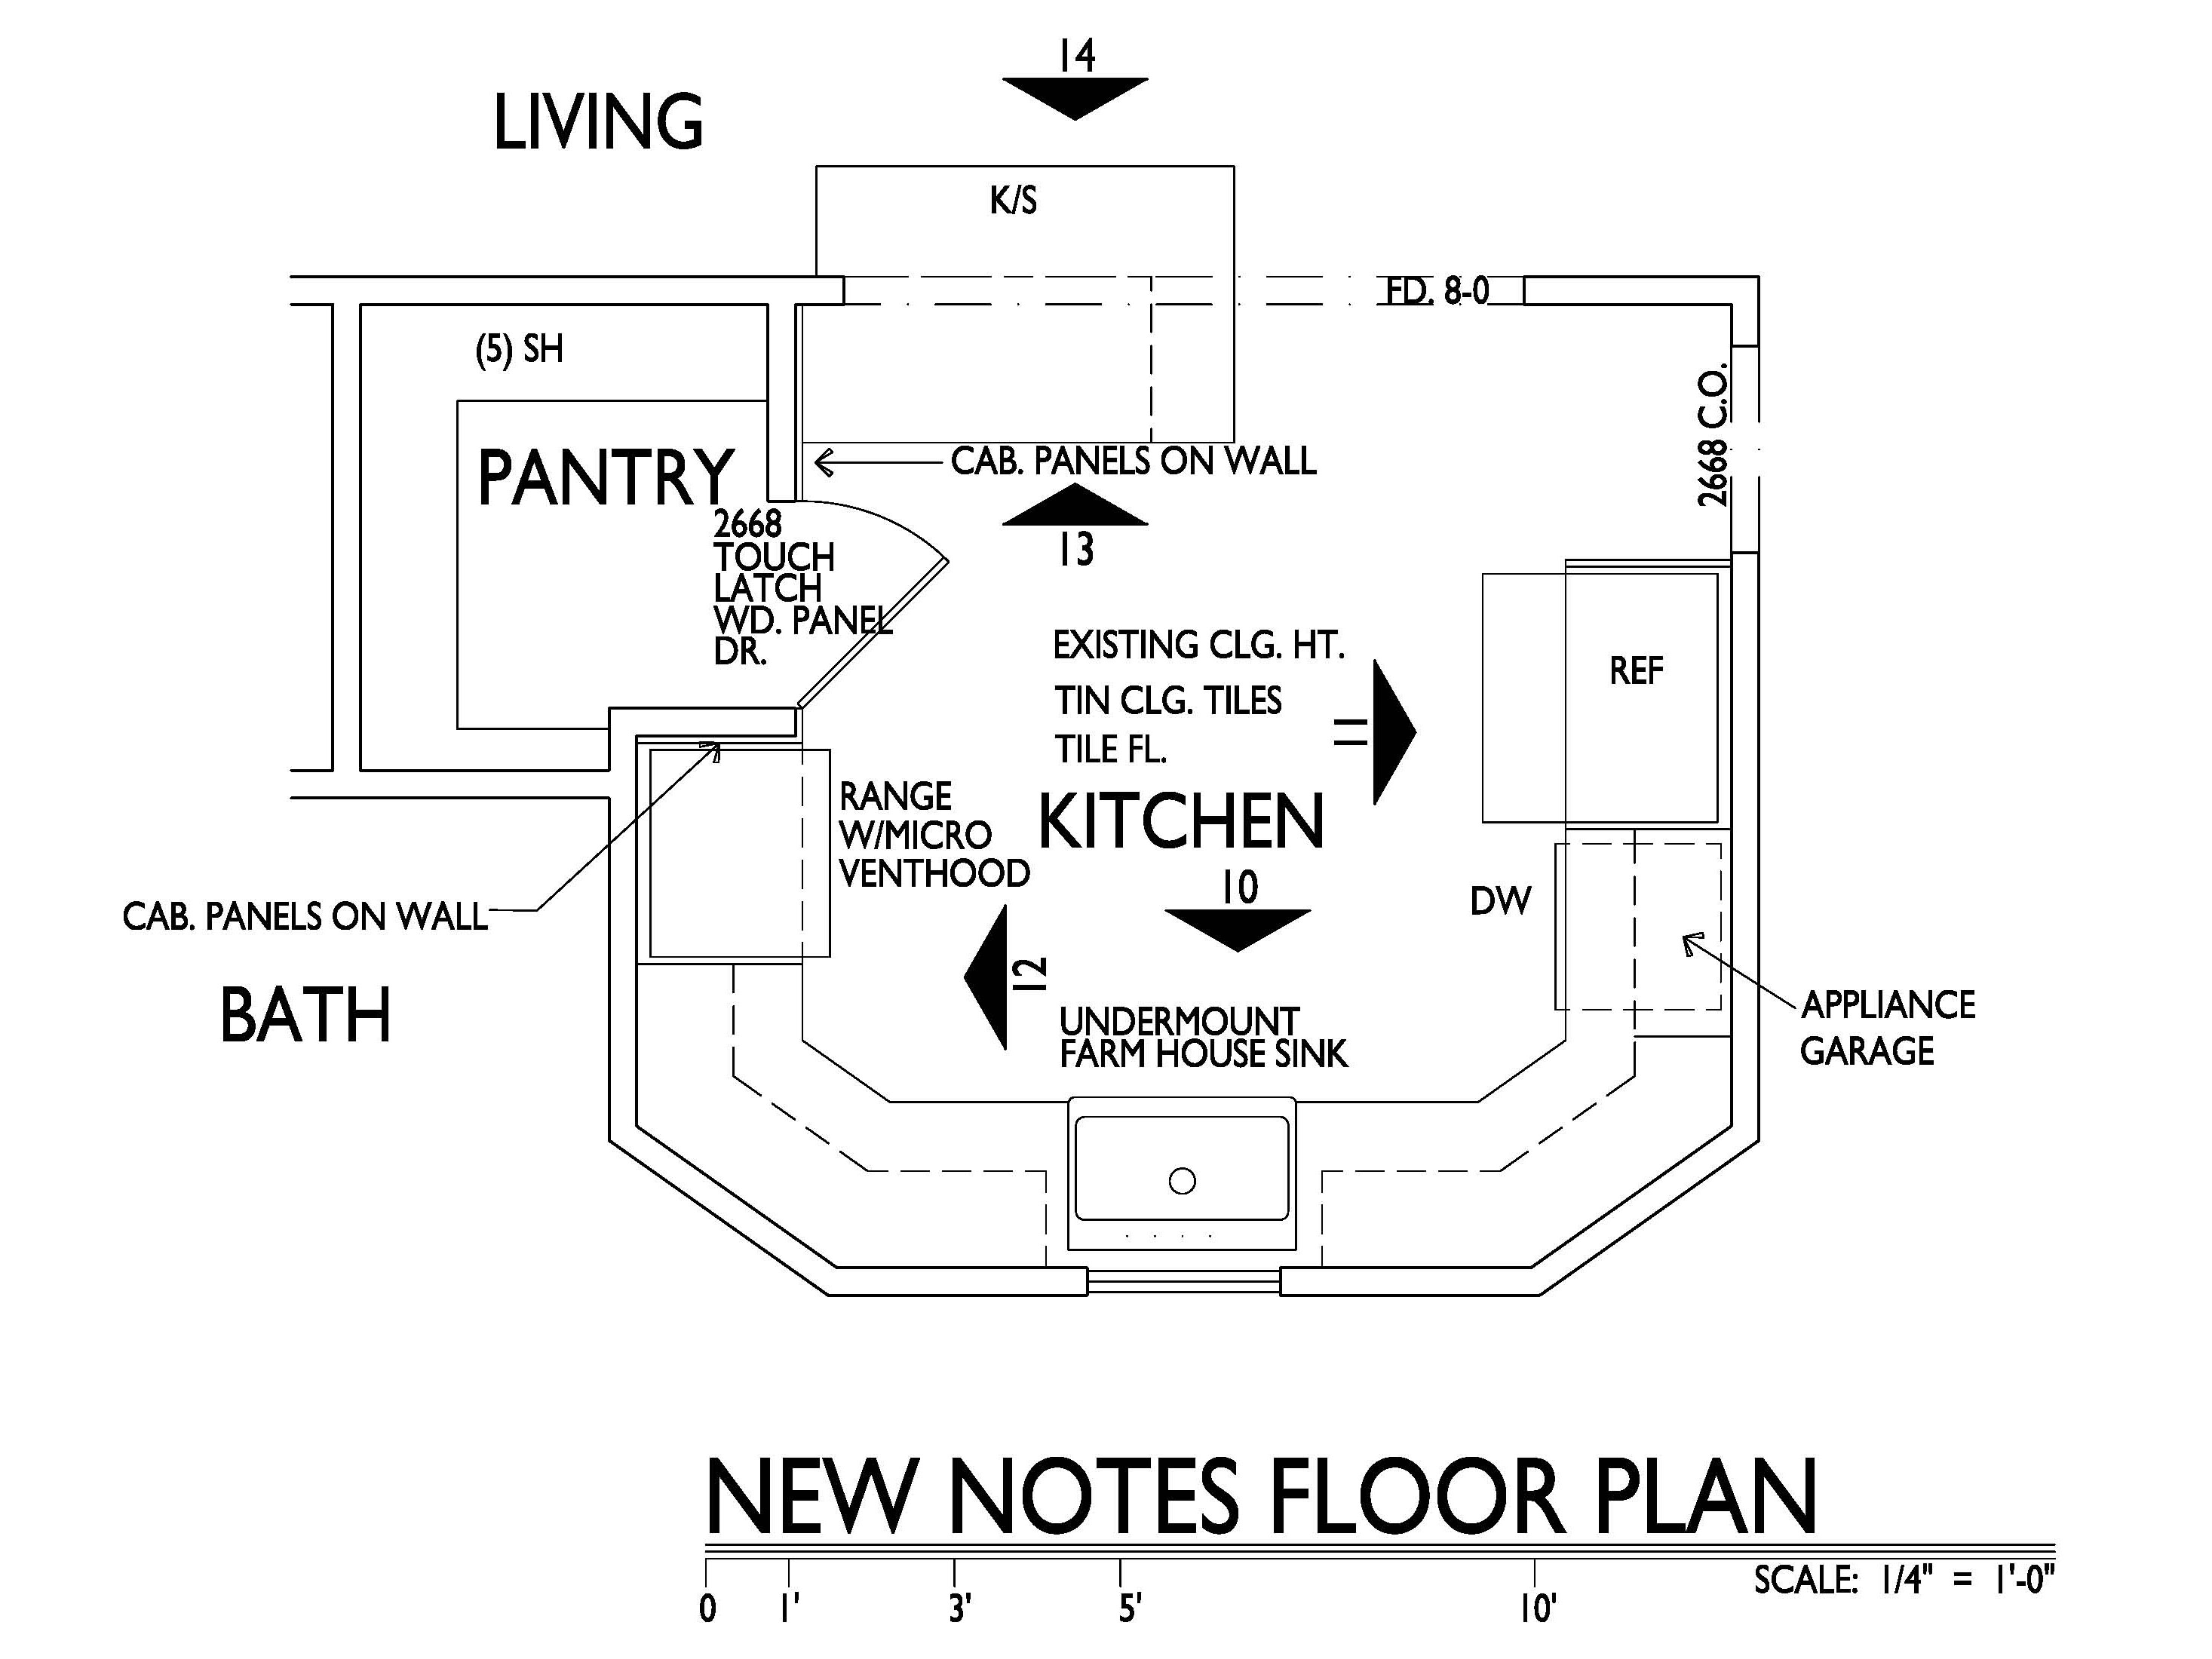 Grandma's Kitchen New Floor Plan